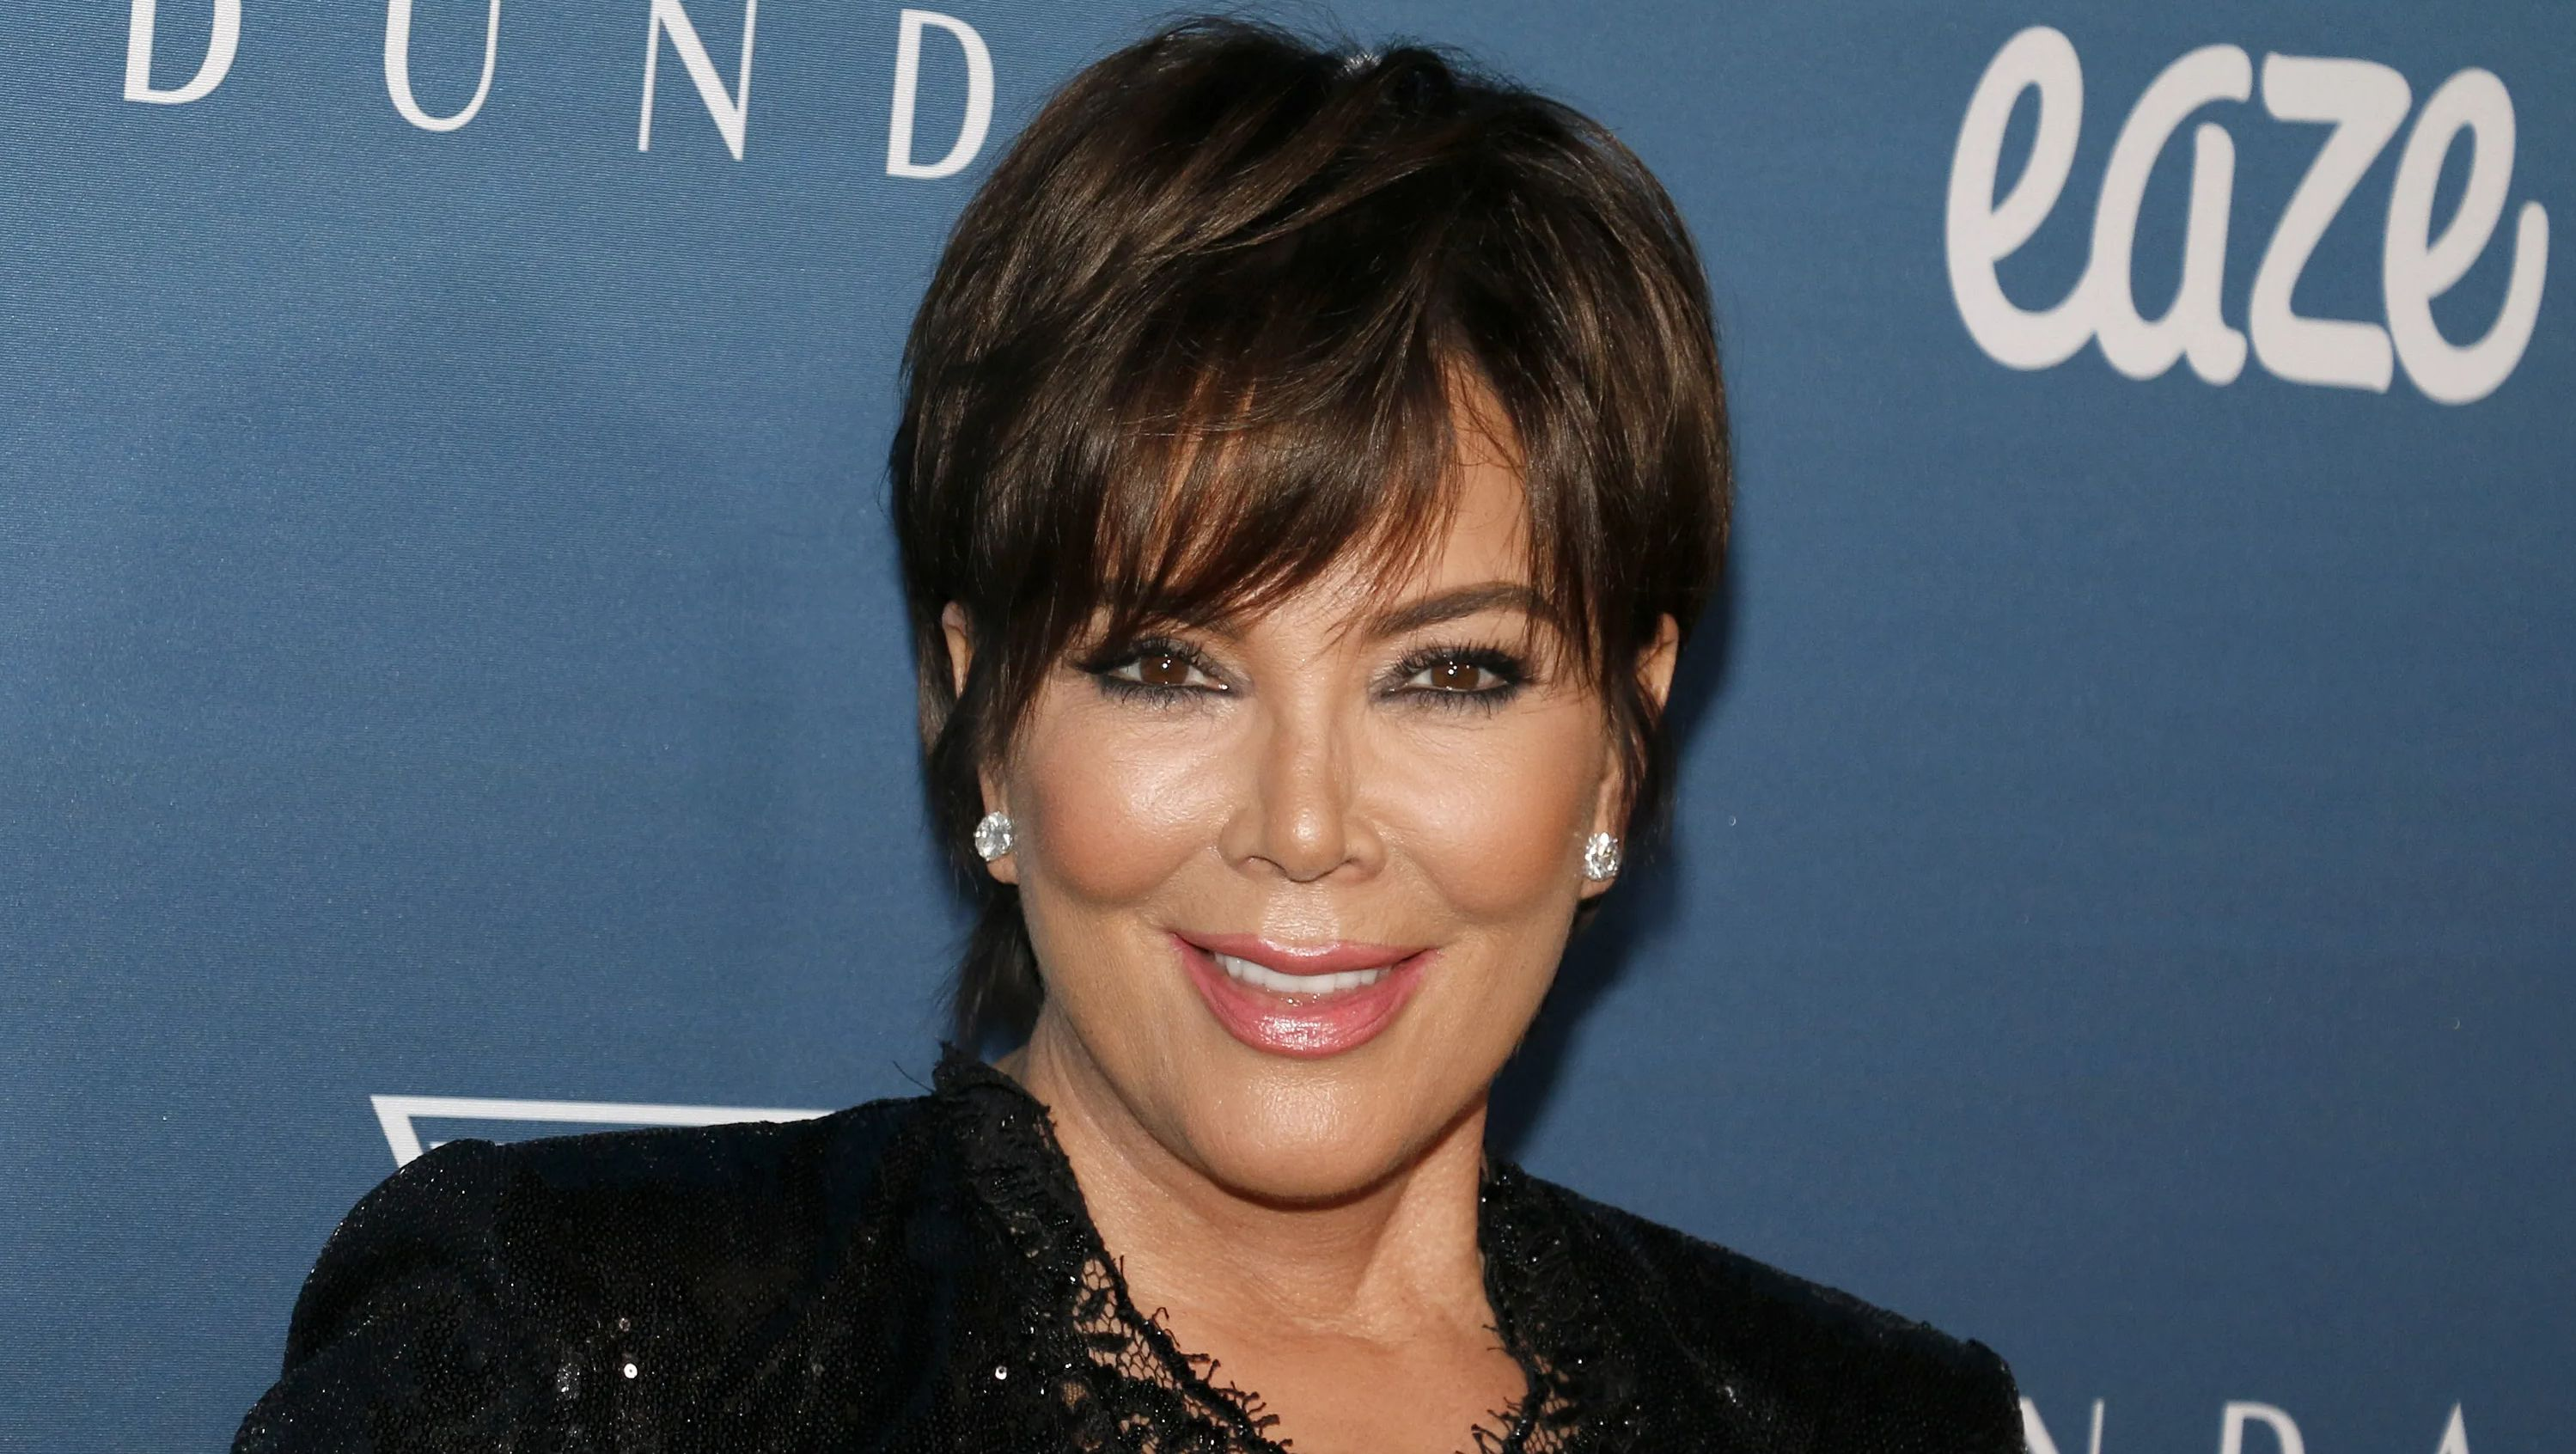 Kris Jenner on red carpet